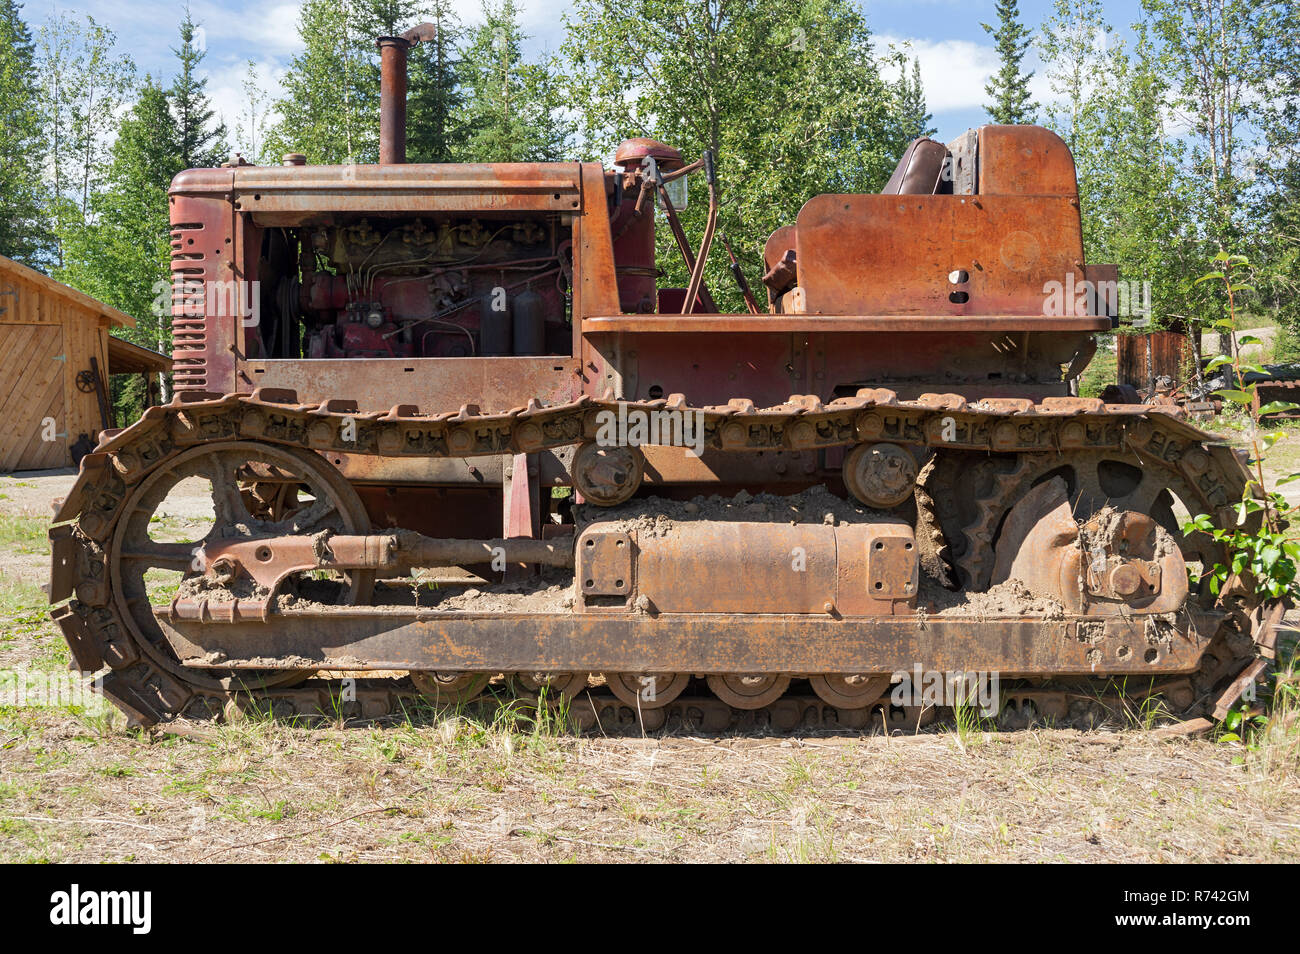 International Crawler tractor with continuous track - Stock Image